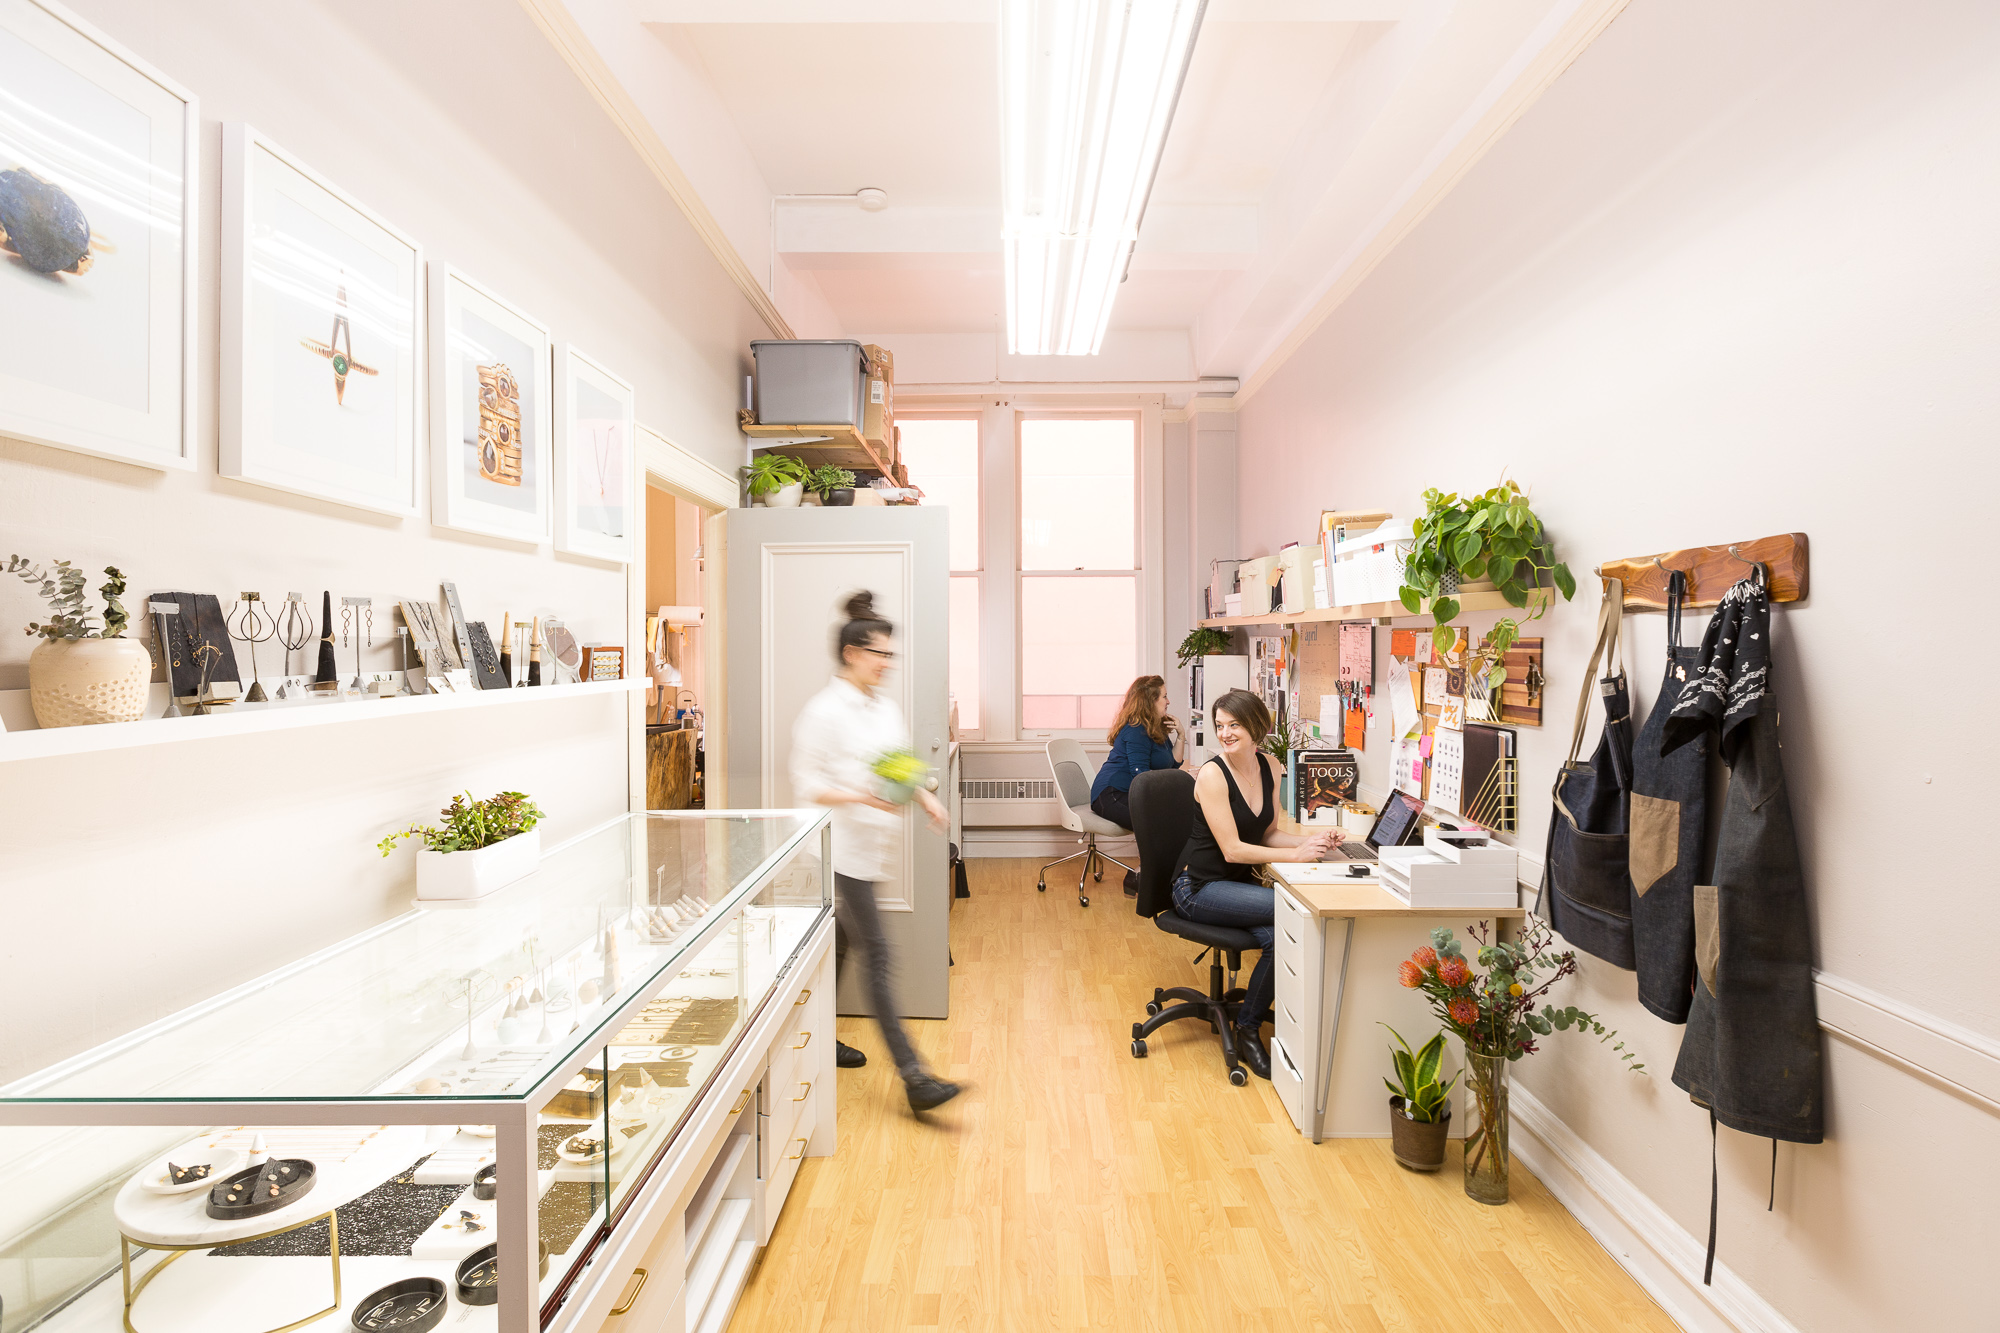 3 Jewelers Choose Collaboration Over Competition via Design*Sponge